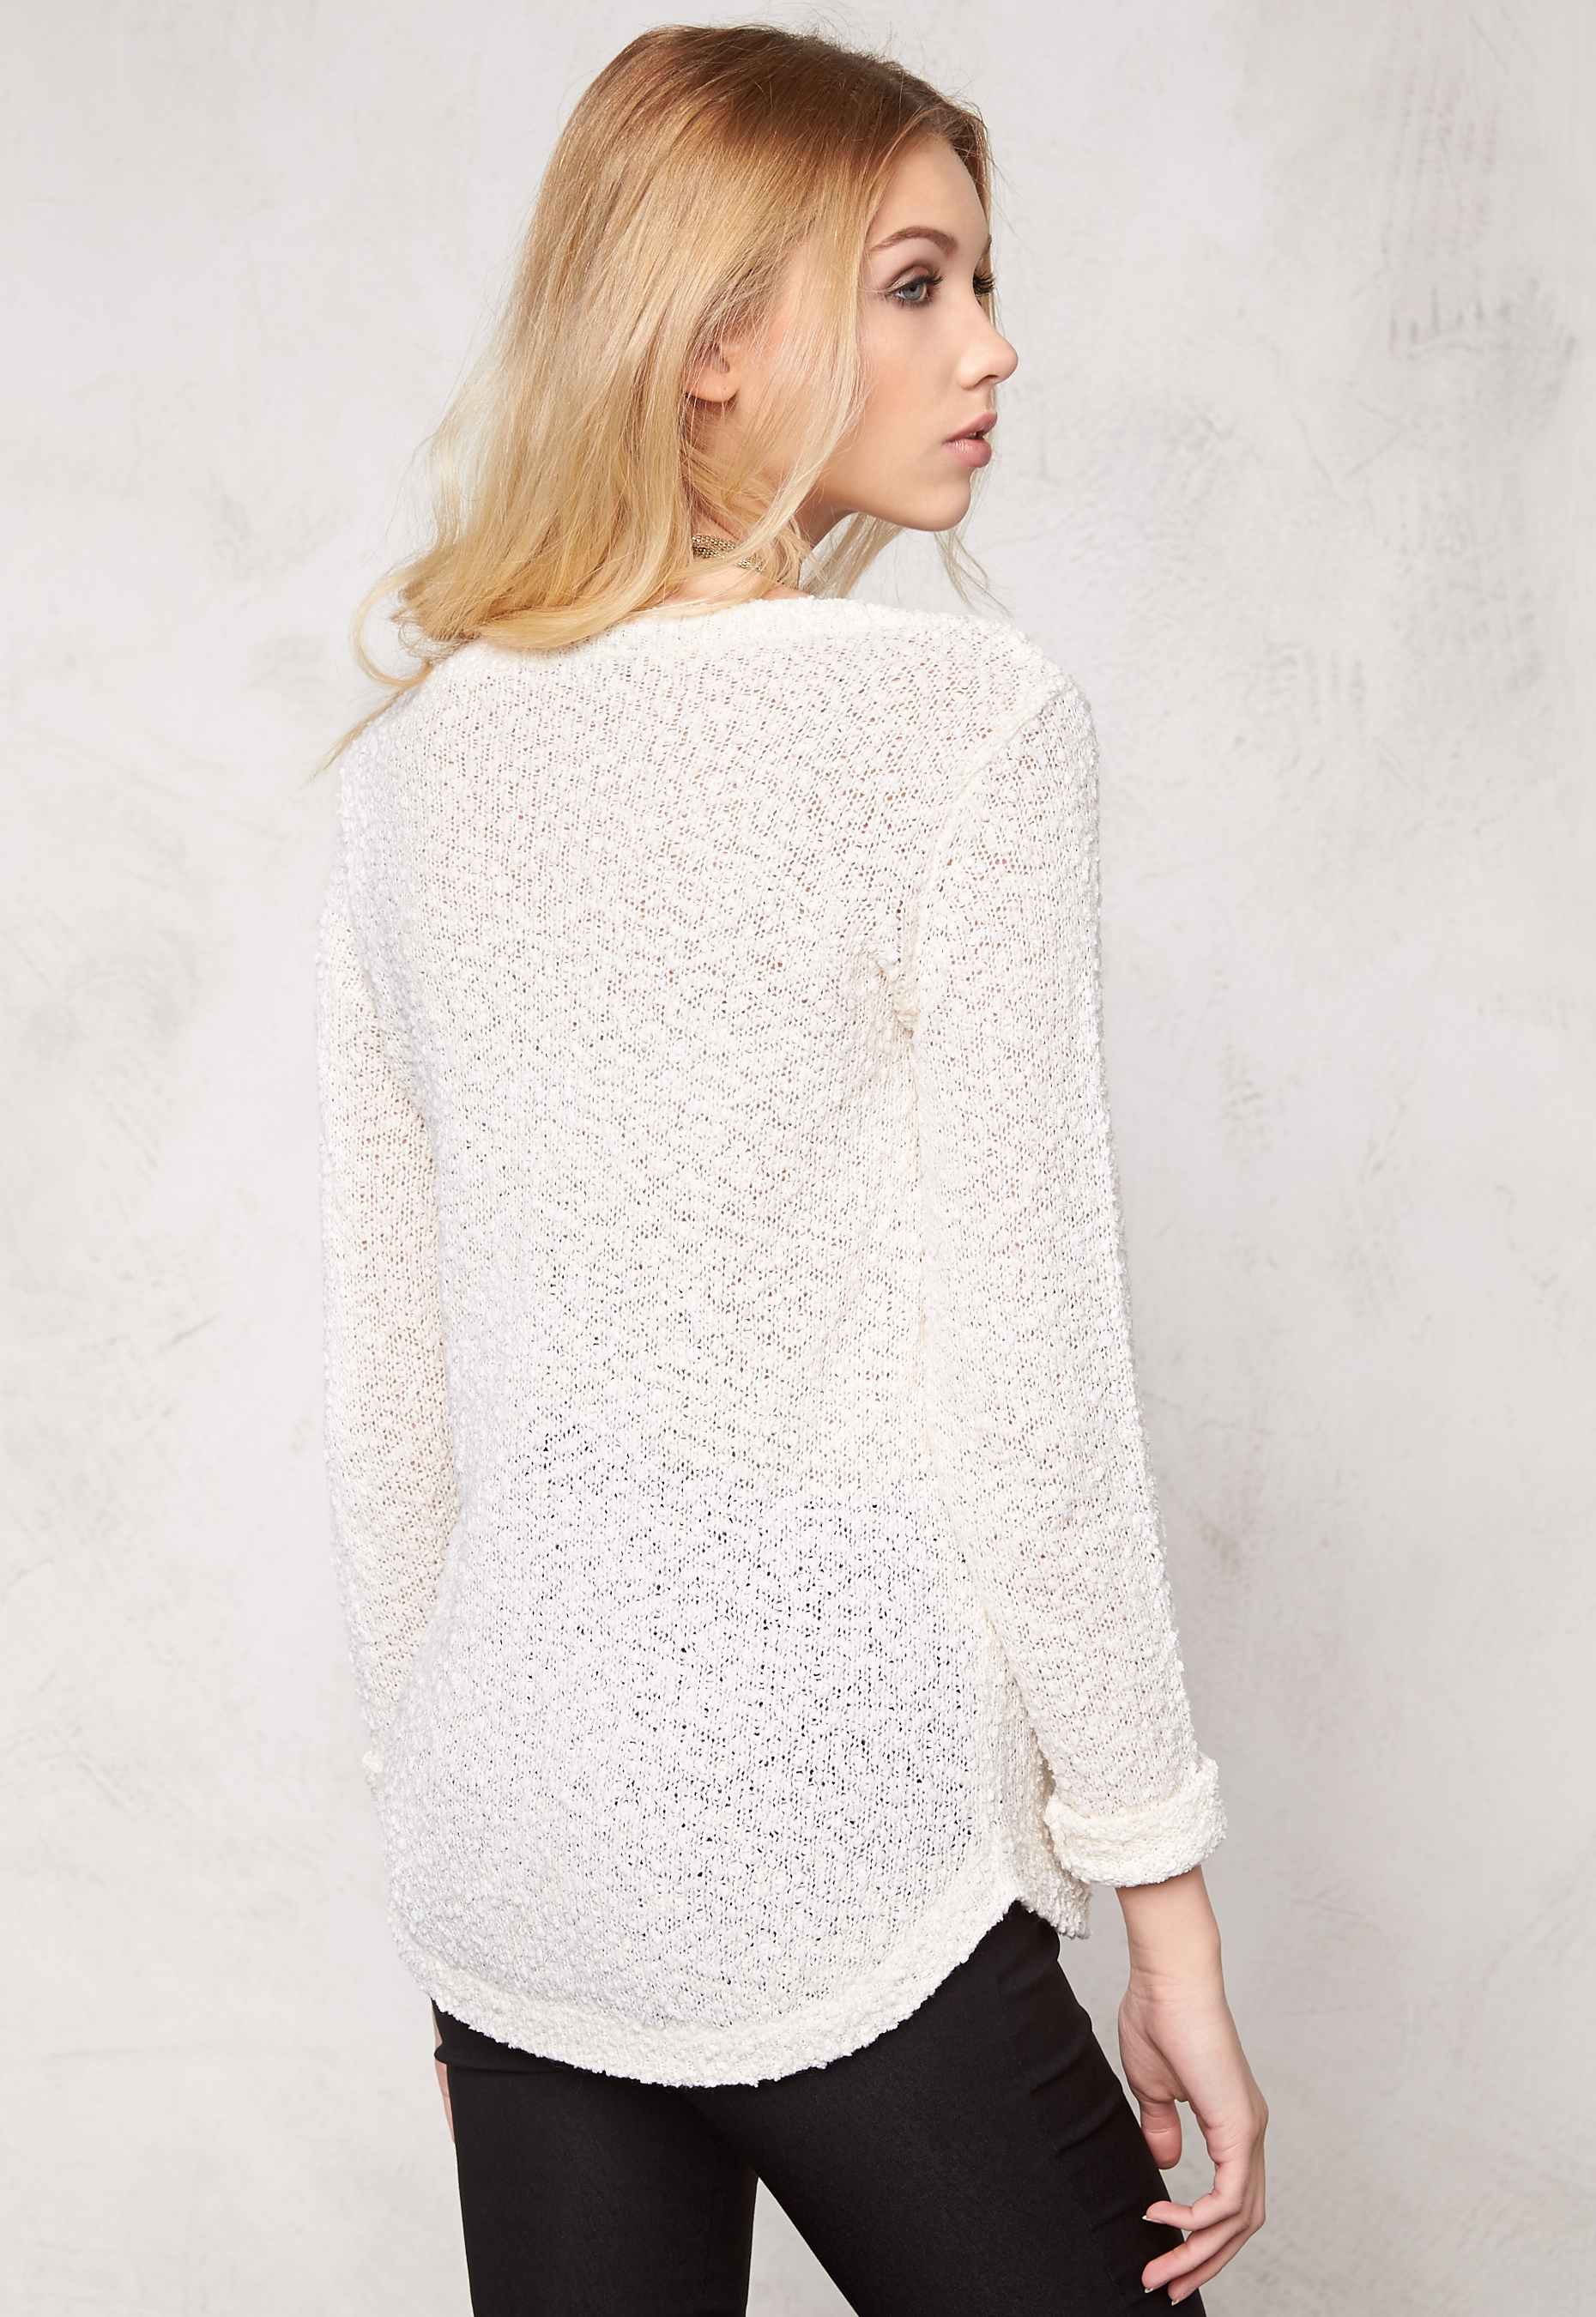 Vero Moda Knitting Yarns : Vero moda snow knit blouse white bubbleroom